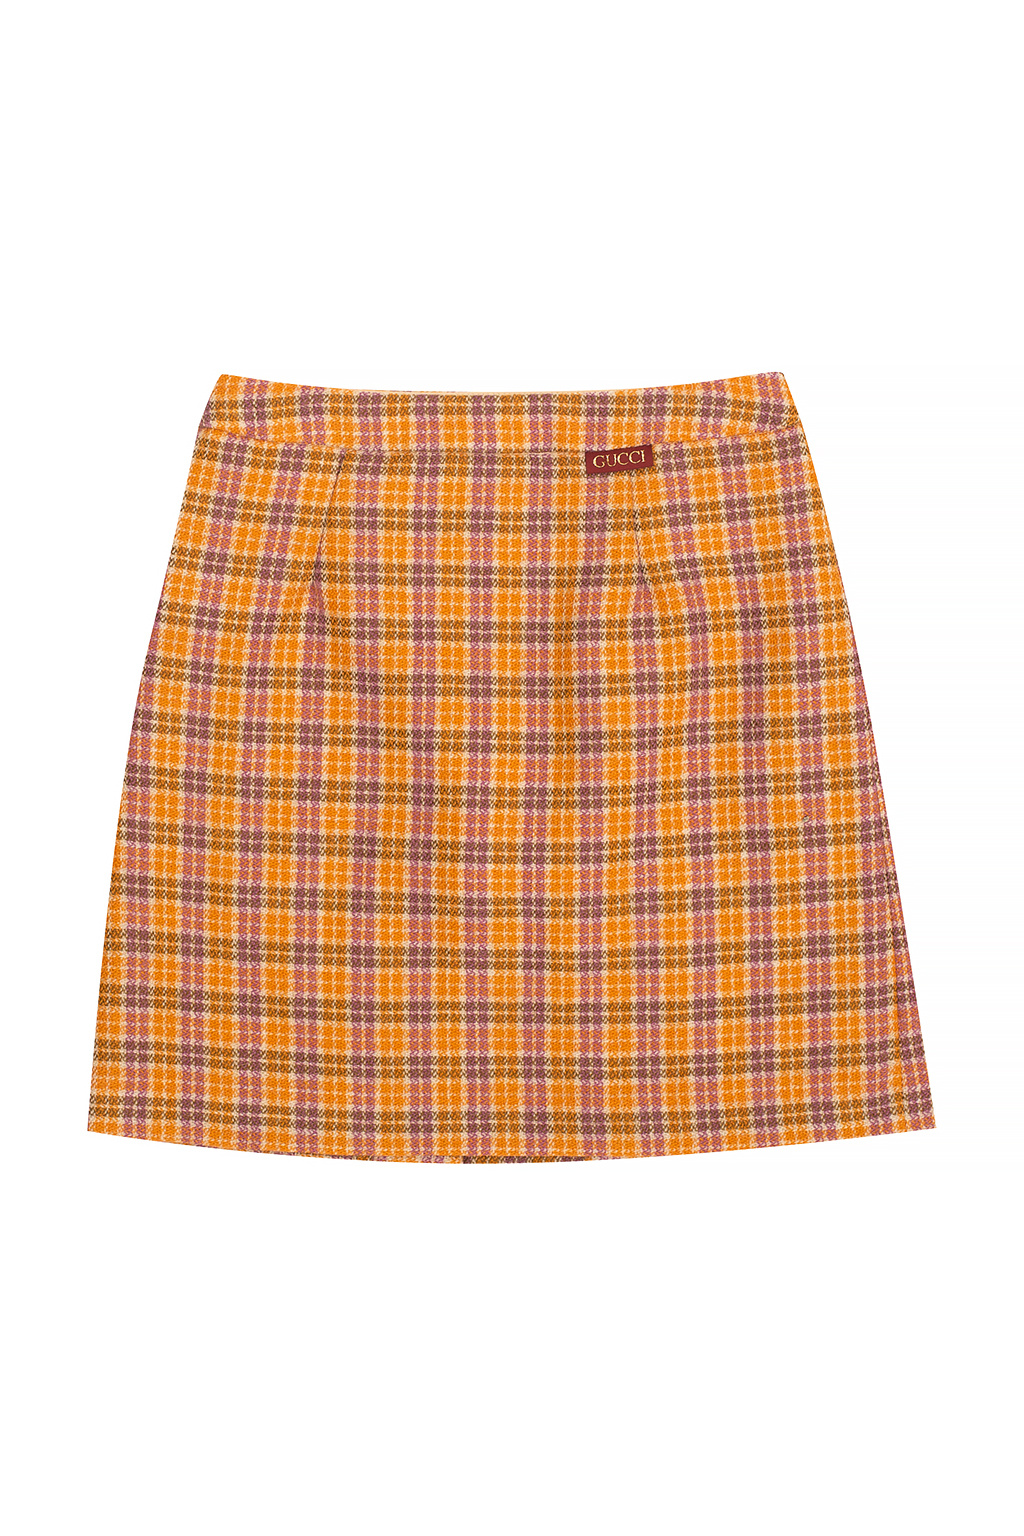 Gucci Kids Checked trousers